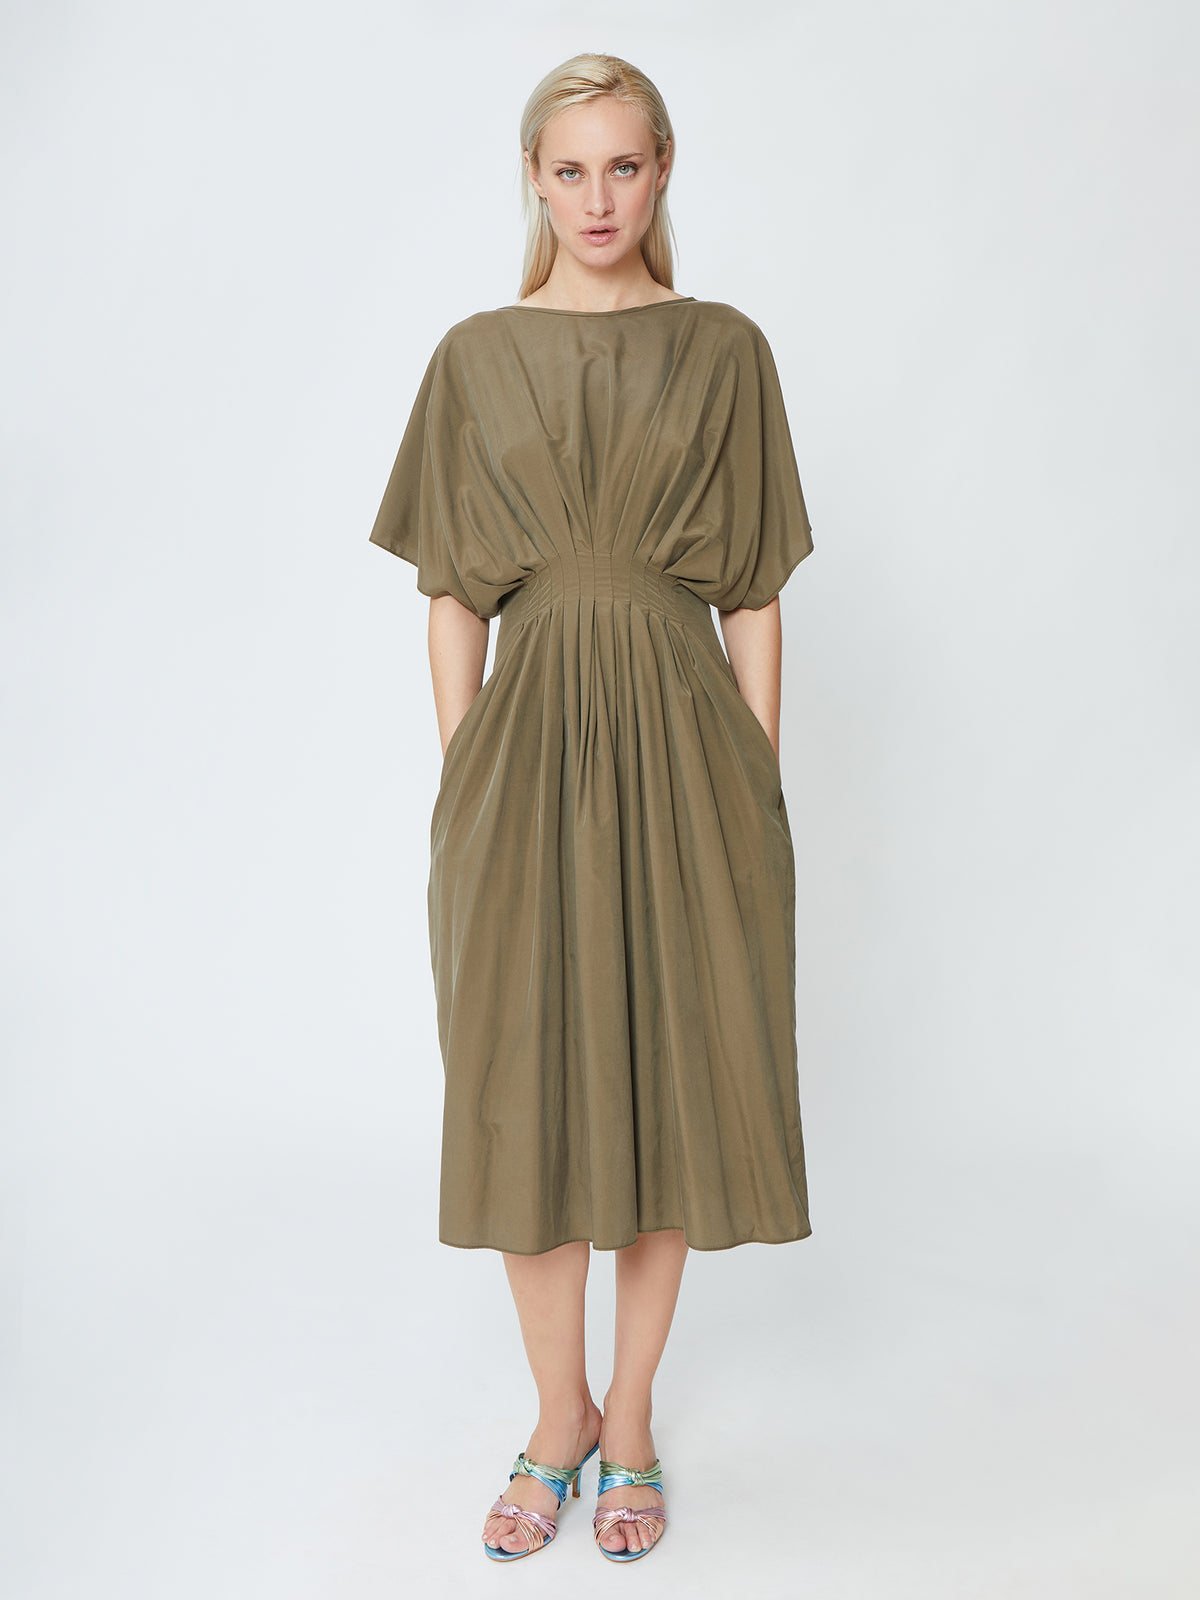 Wildwood - Sand Dune Dress - Khaki